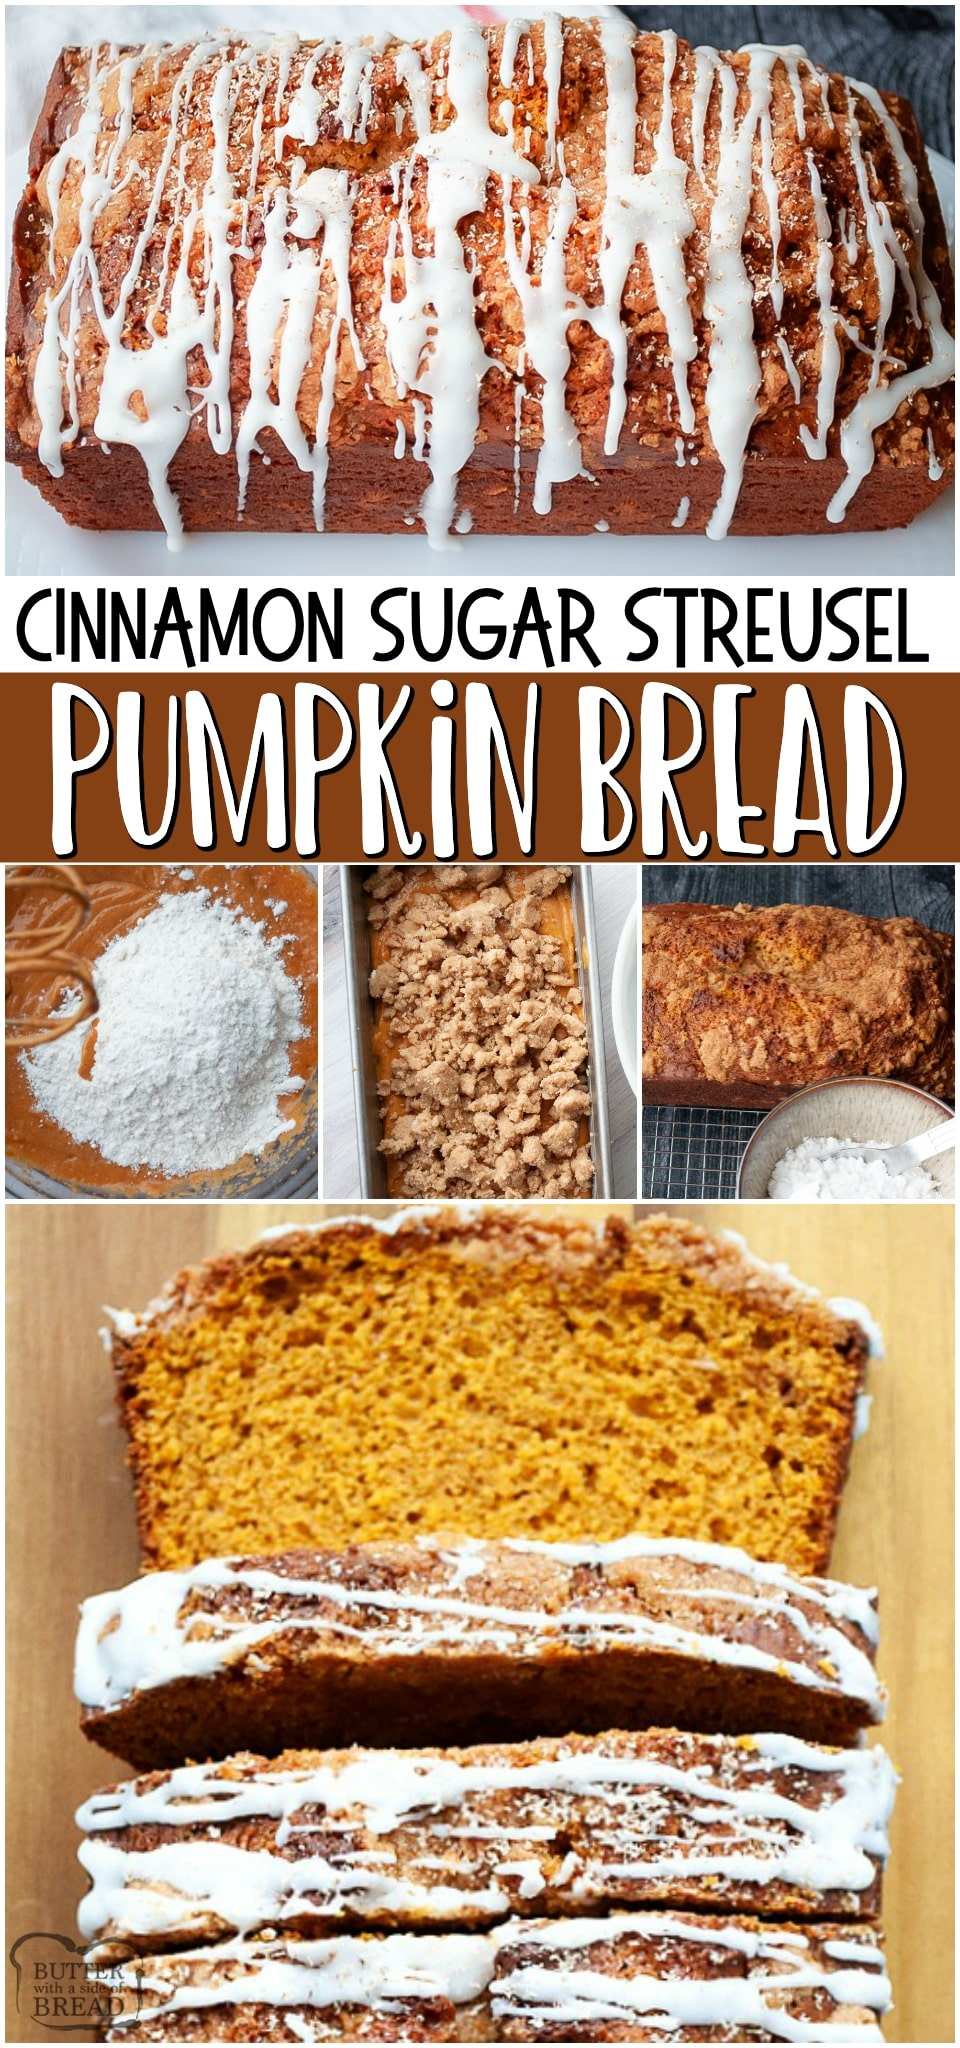 Pumpkin bread with streusel topping ~ classic pumpkin quick bread recipe made with pumpkin, brown sugar, spices & more. Moist pumpkin bread with cinnamon sugar topping and a simple glaze, this bread is a perfect snack or treat. #bread #pumpkin #cinnamon #baking #easyrecipe from BUTTER WITH A SIDE OF BREAD